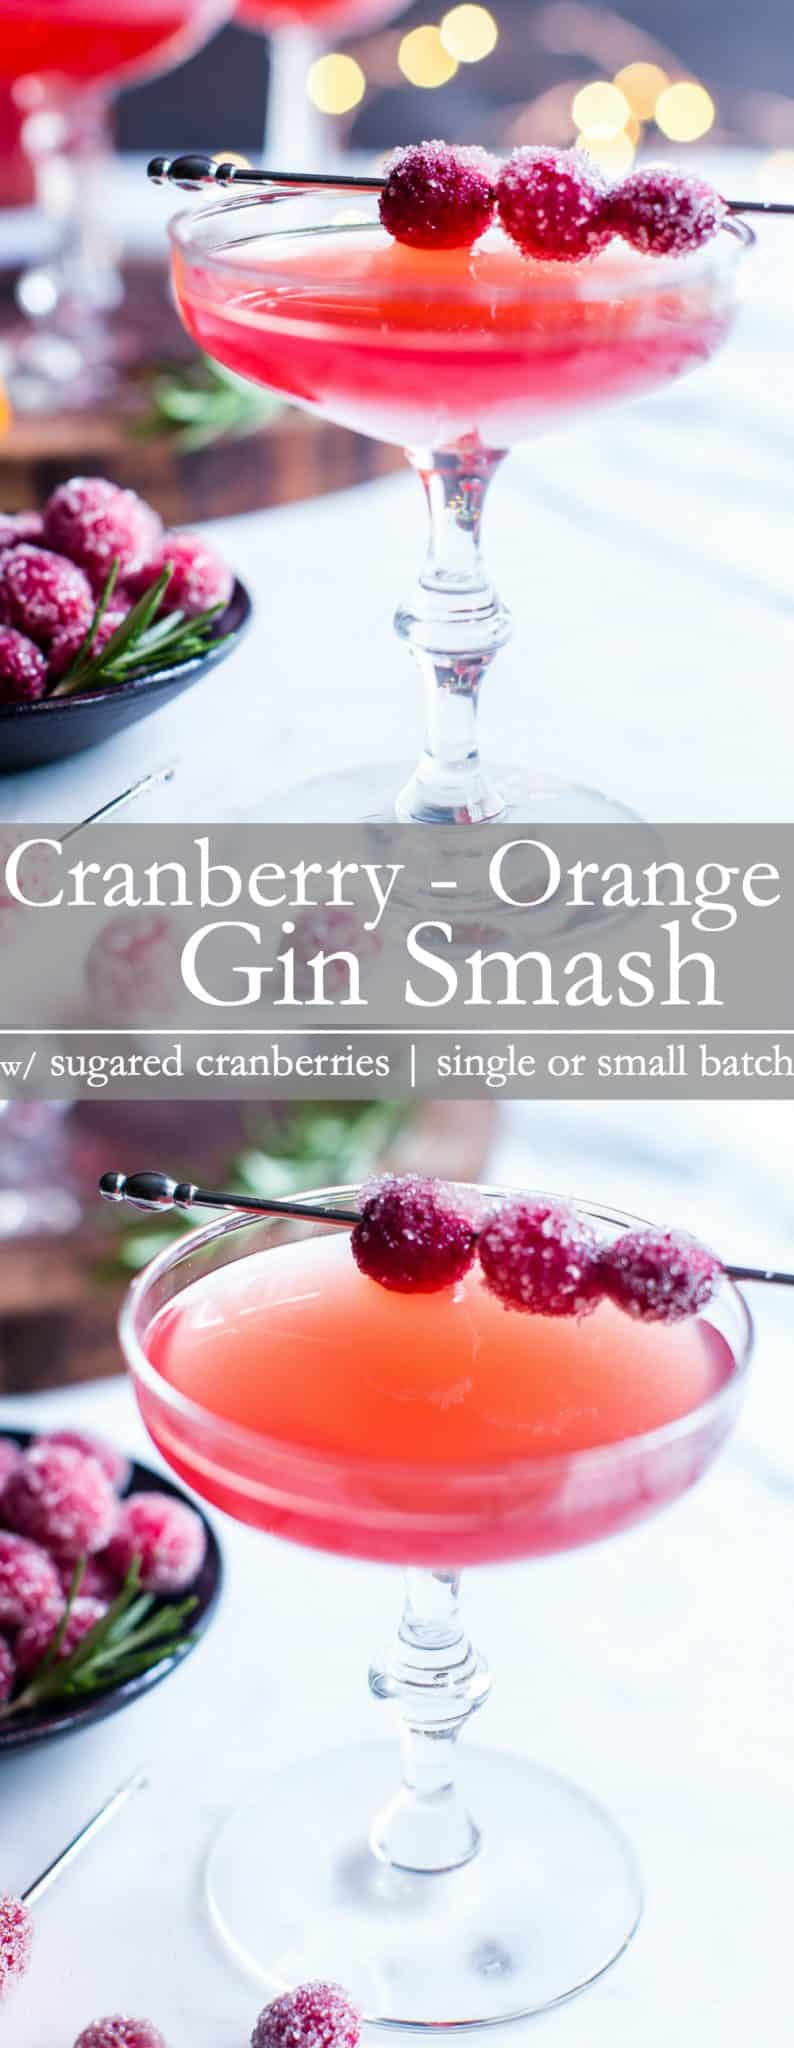 Smooth, tart and a bit of sweet, this cranberry juice cocktail is muddled with fresh cranberries for the brightest flavors. A hint of rosemary gives this cocktail just a bit of intrigue. Cranberry-Orange Gin Smash is party pleasing! #HolidayCocktail #HappyHour #GinCocktail #AdultBeverave #CranberryJuiceCocktailRecipe #CranberryOrangeCocktail